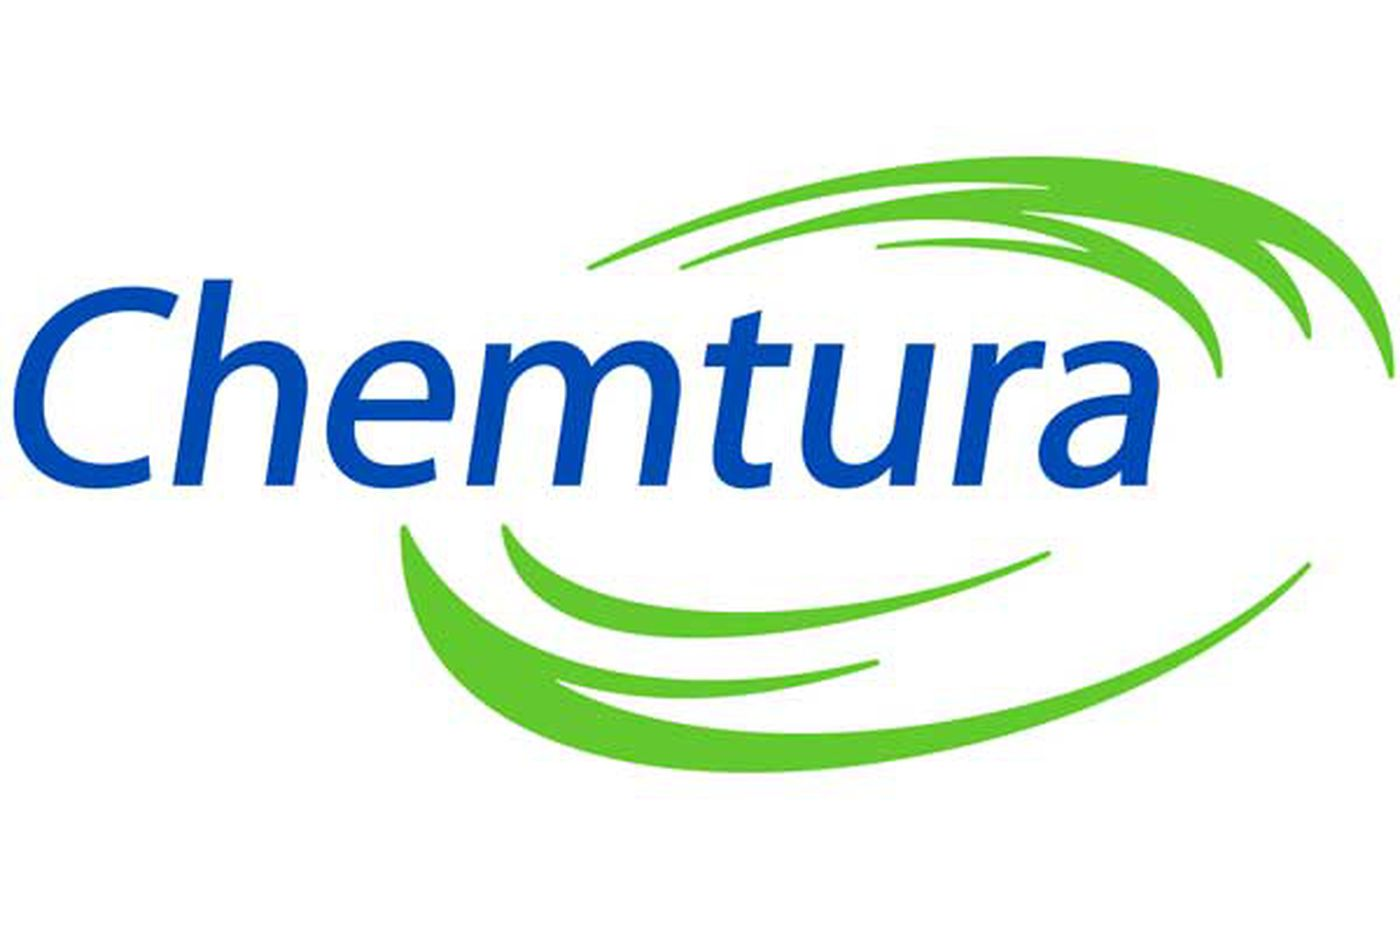 Chemtura to sell agricultural-chemicals unit for about $1 billion